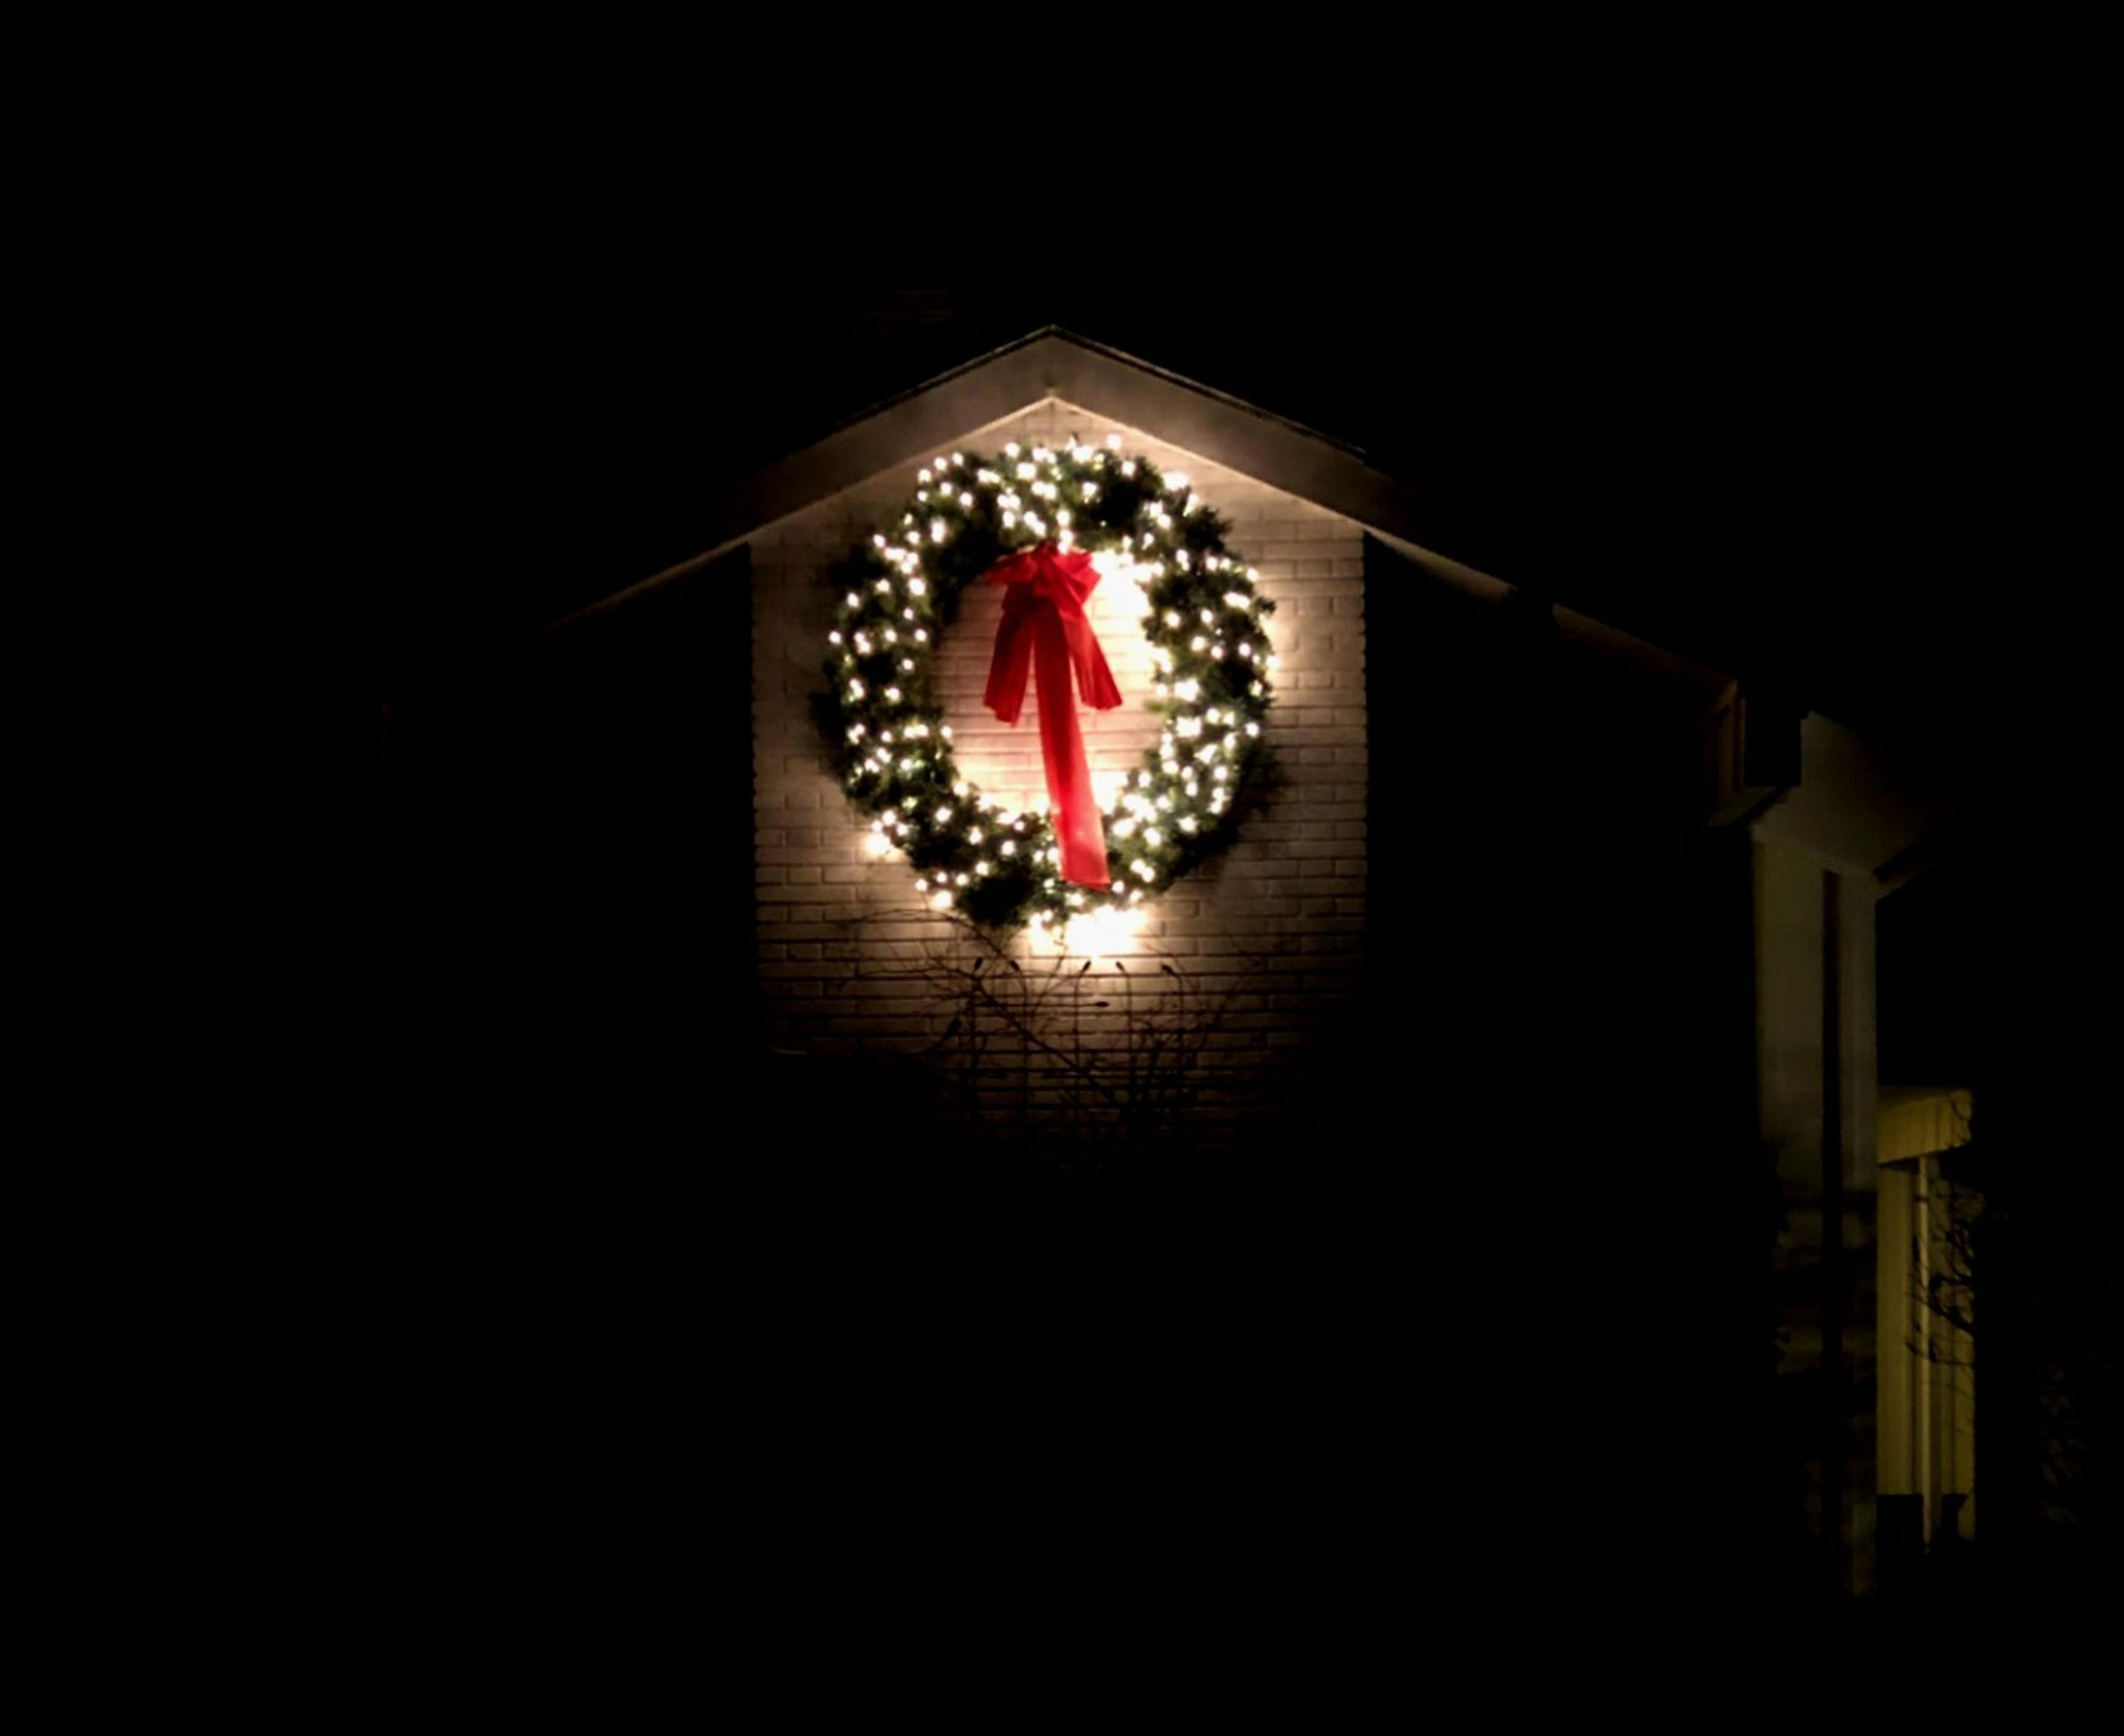 A Christmas wreath lights up the chimney of a home in South Burlington on Tuesday, Dec. 10, 2019.